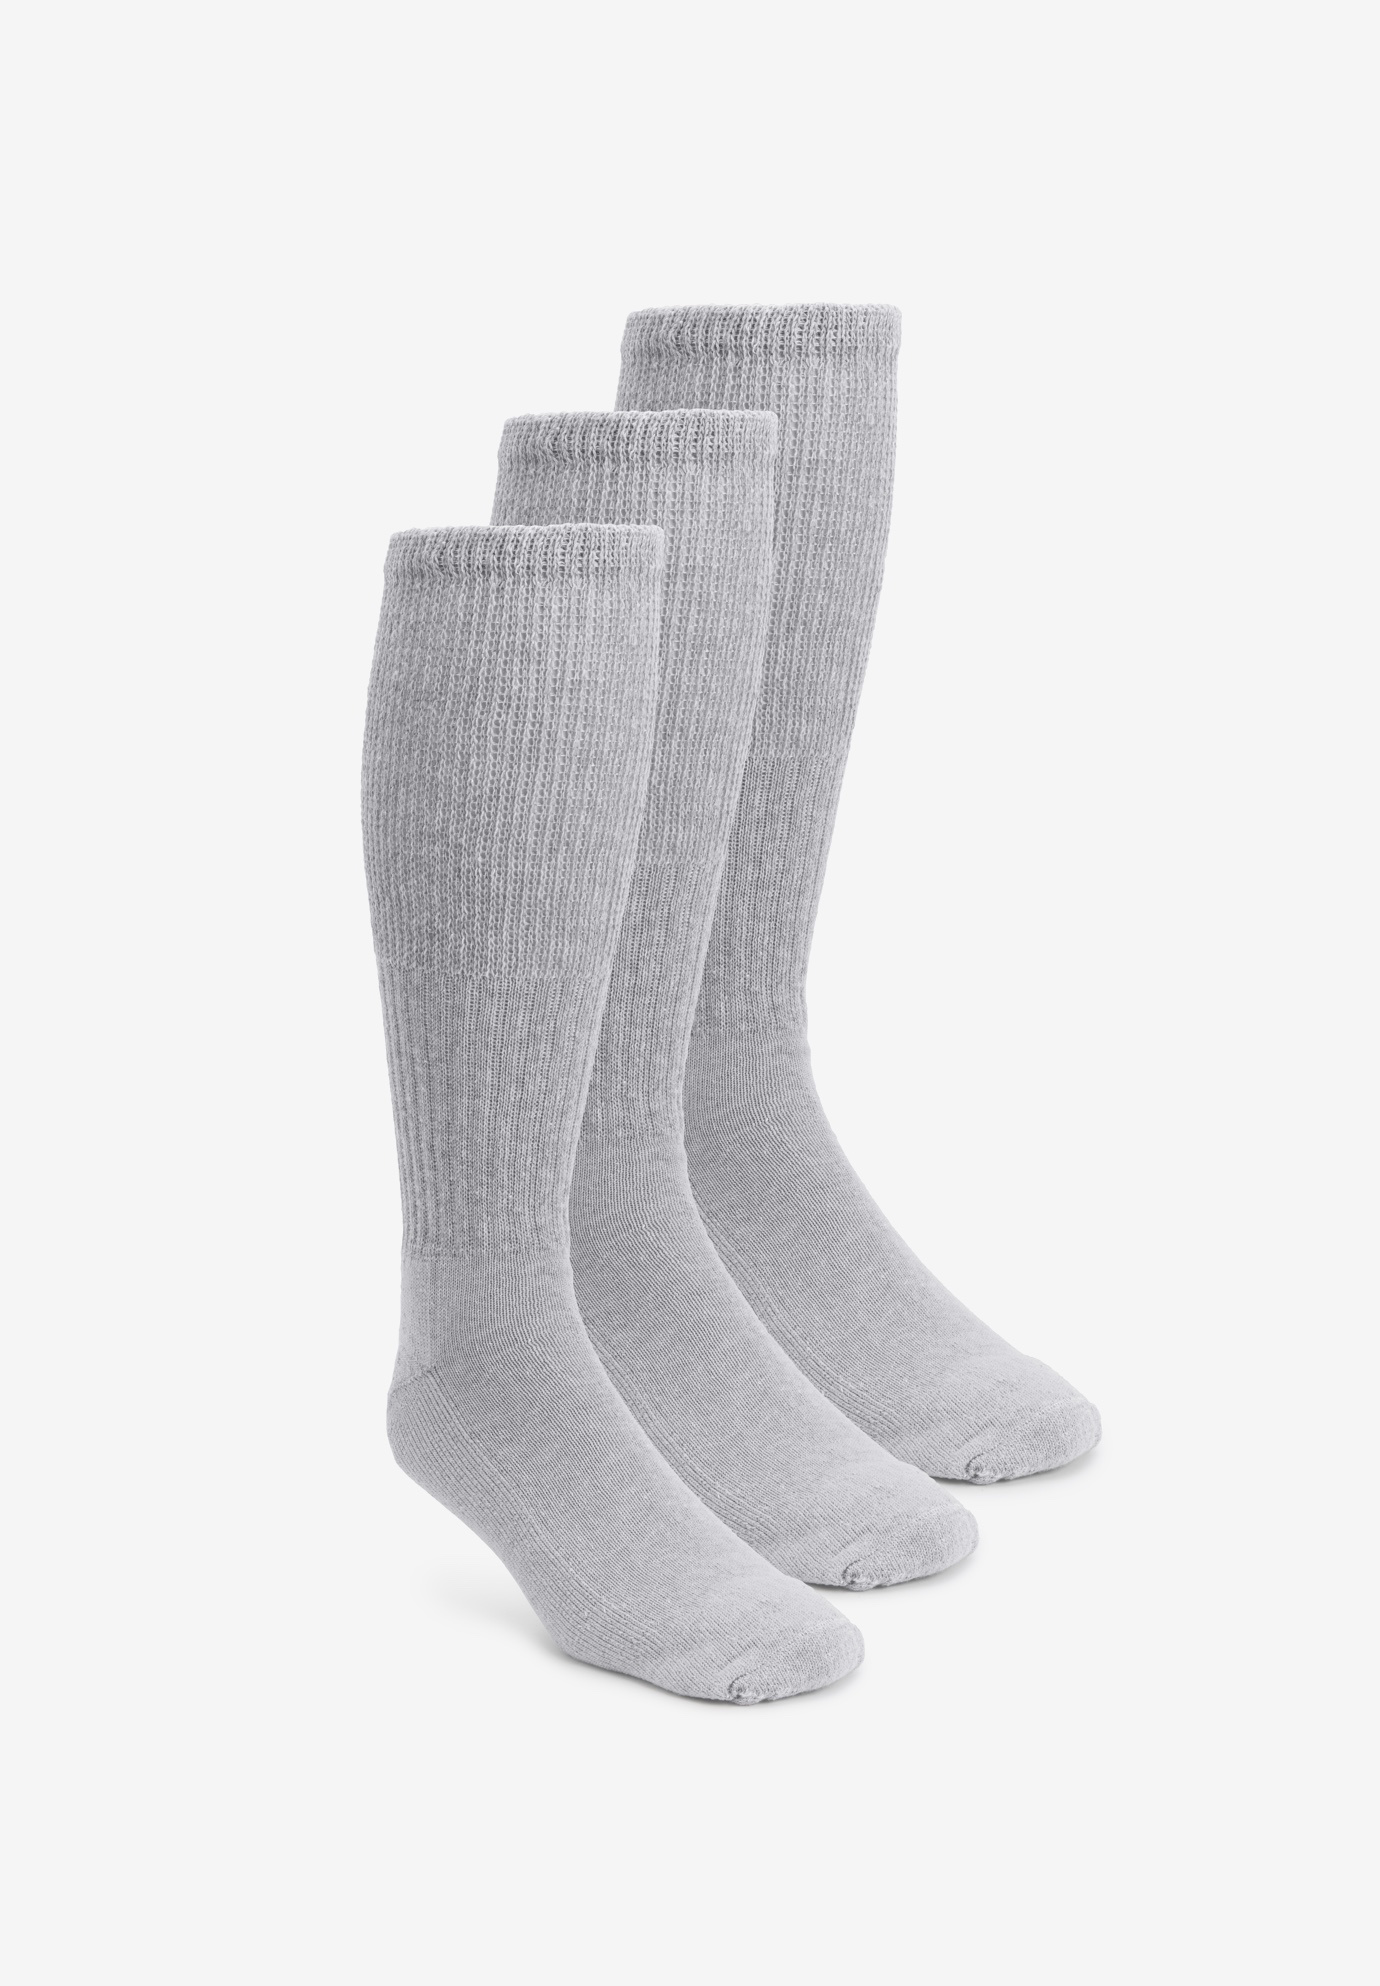 Diabetic Over-the-Calf Extra Wide Socks 3-Pack,